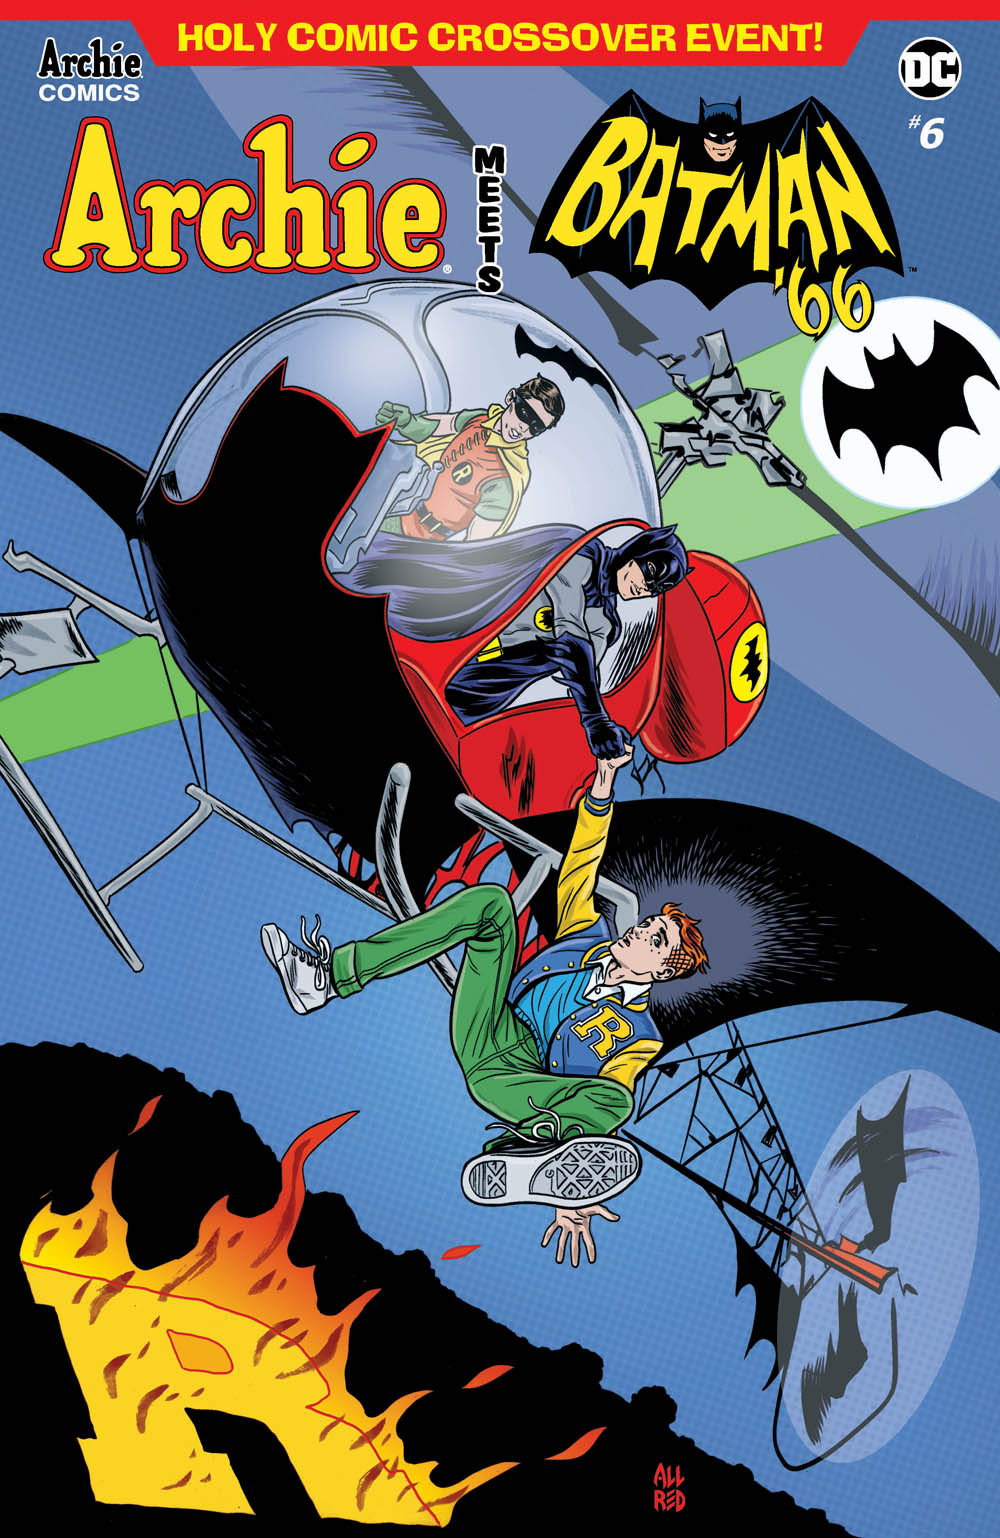 ARCHIE MEETS BATMAN 66 #1 CVR A ALLRED First Printing Flat Rate Shipping!